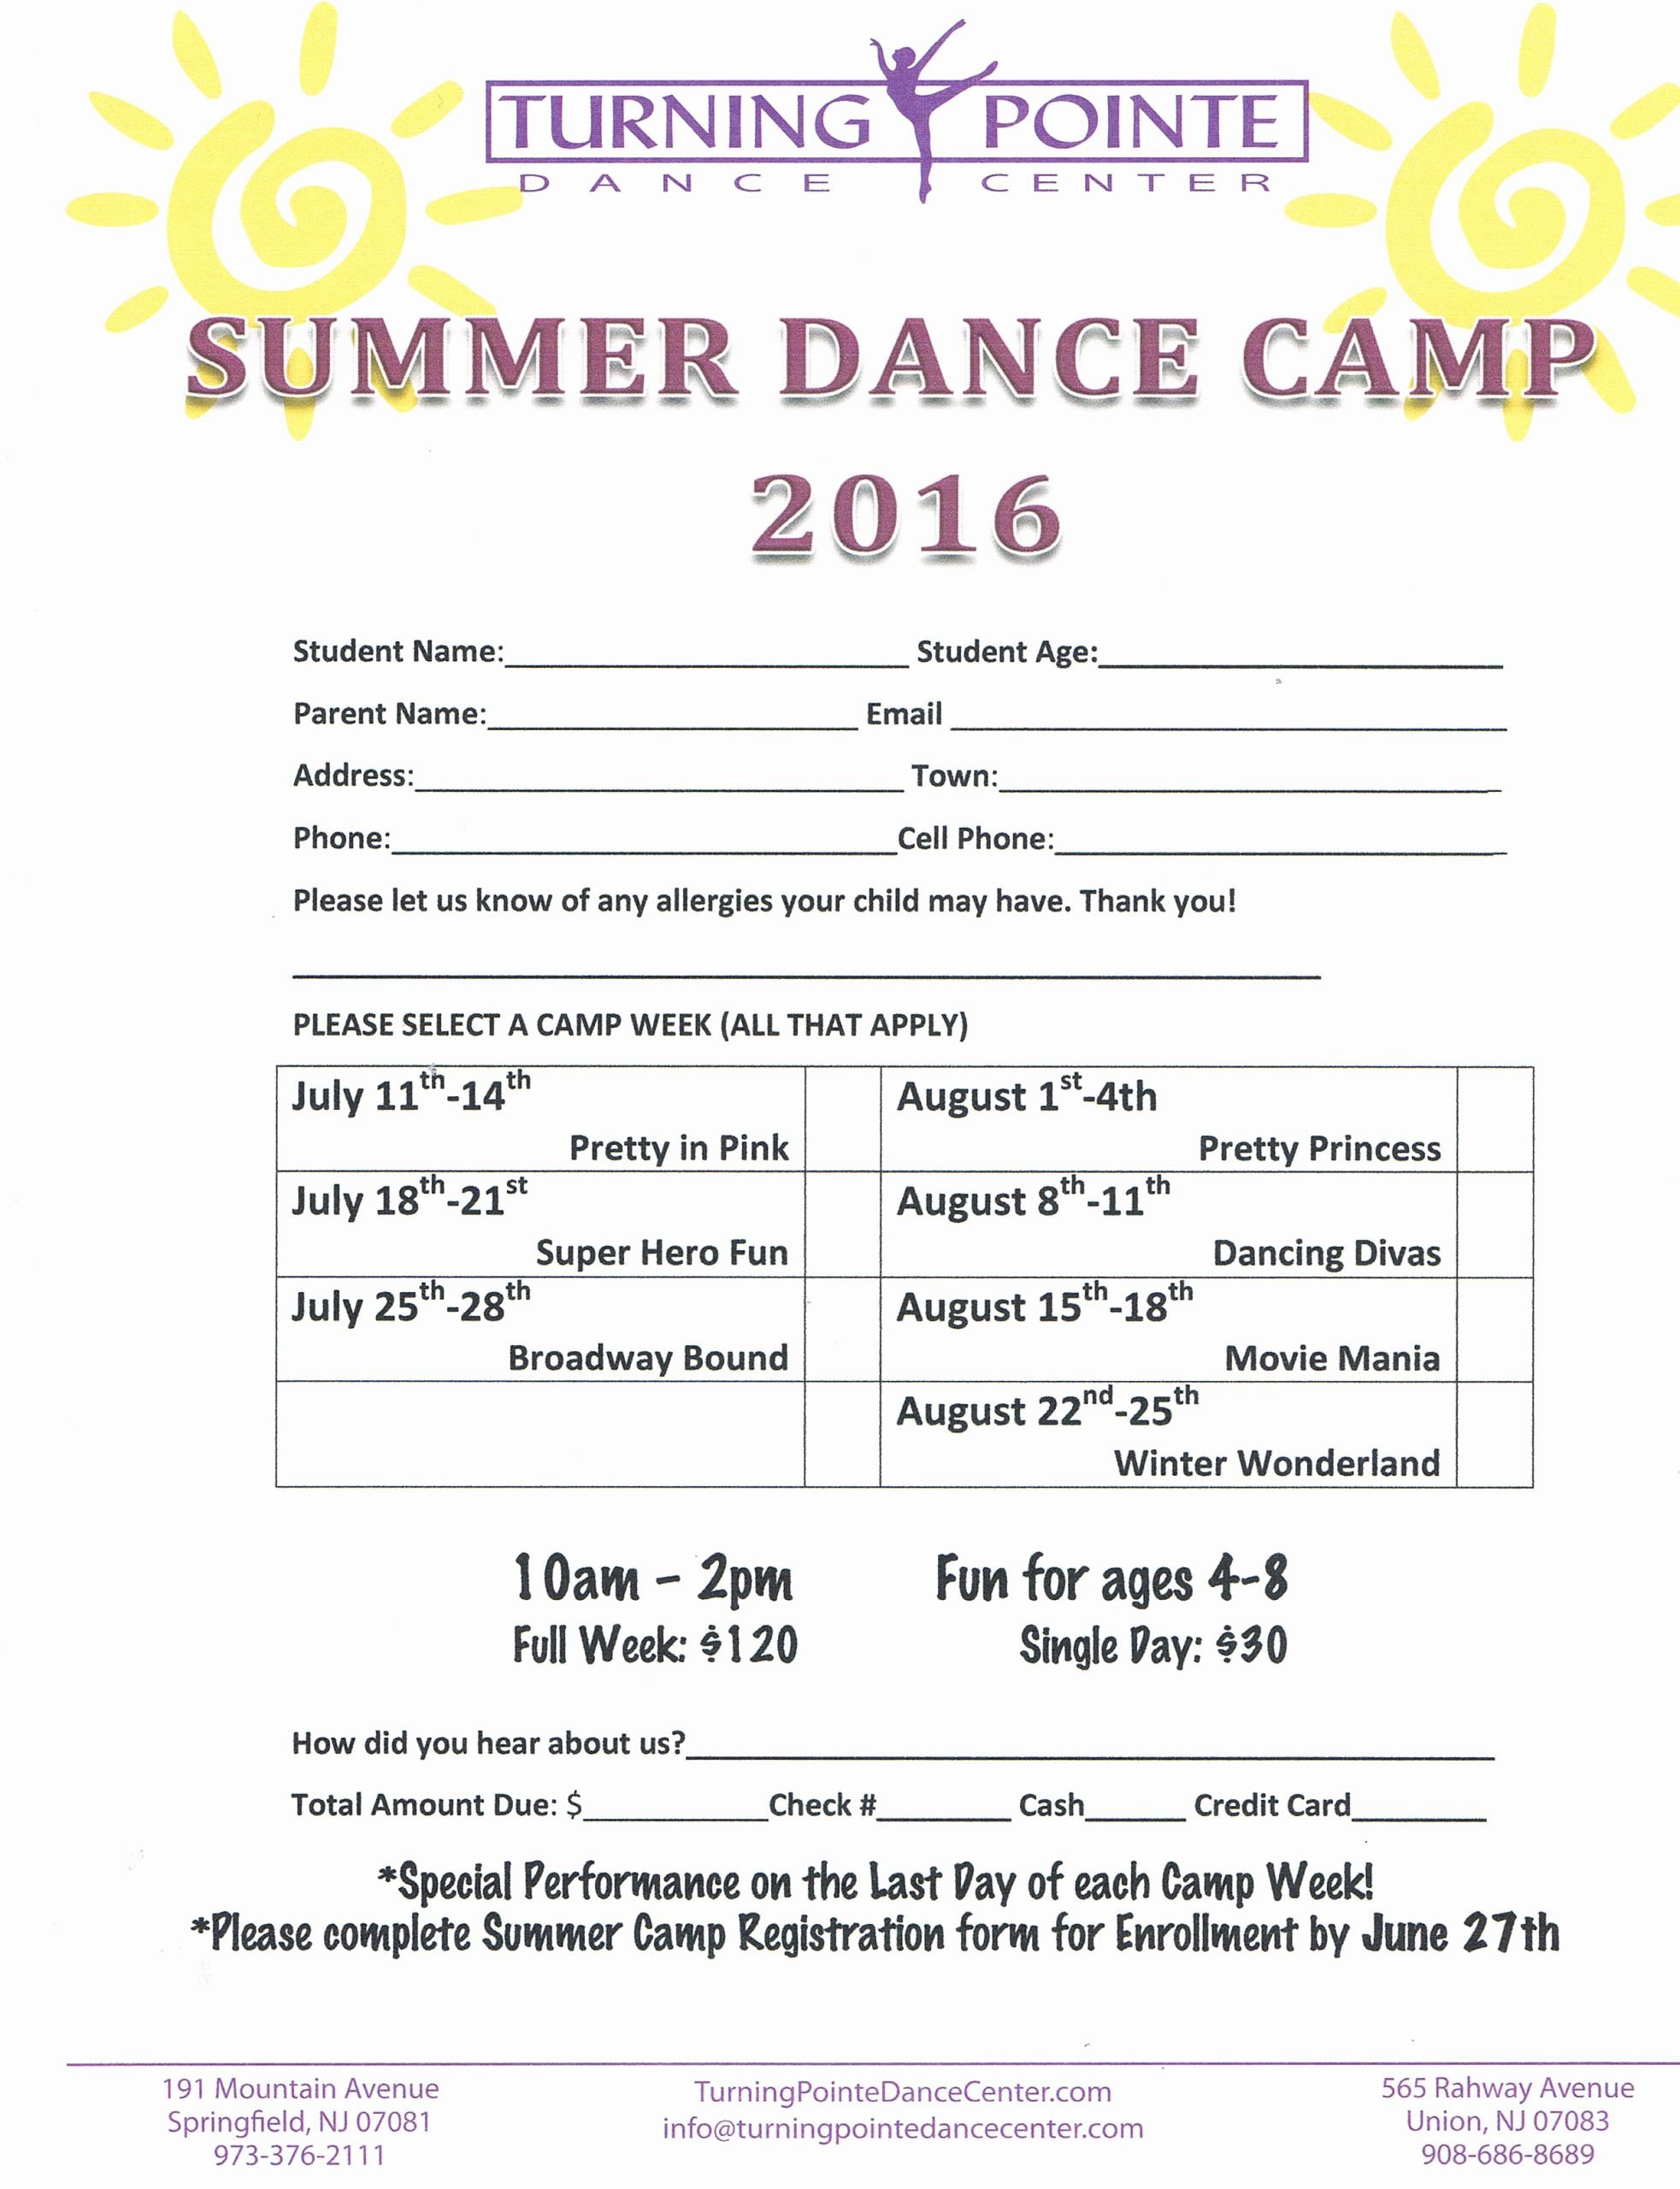 Camp Registration form Template Beautiful Summer Schedule Turning Pointe Dance Center